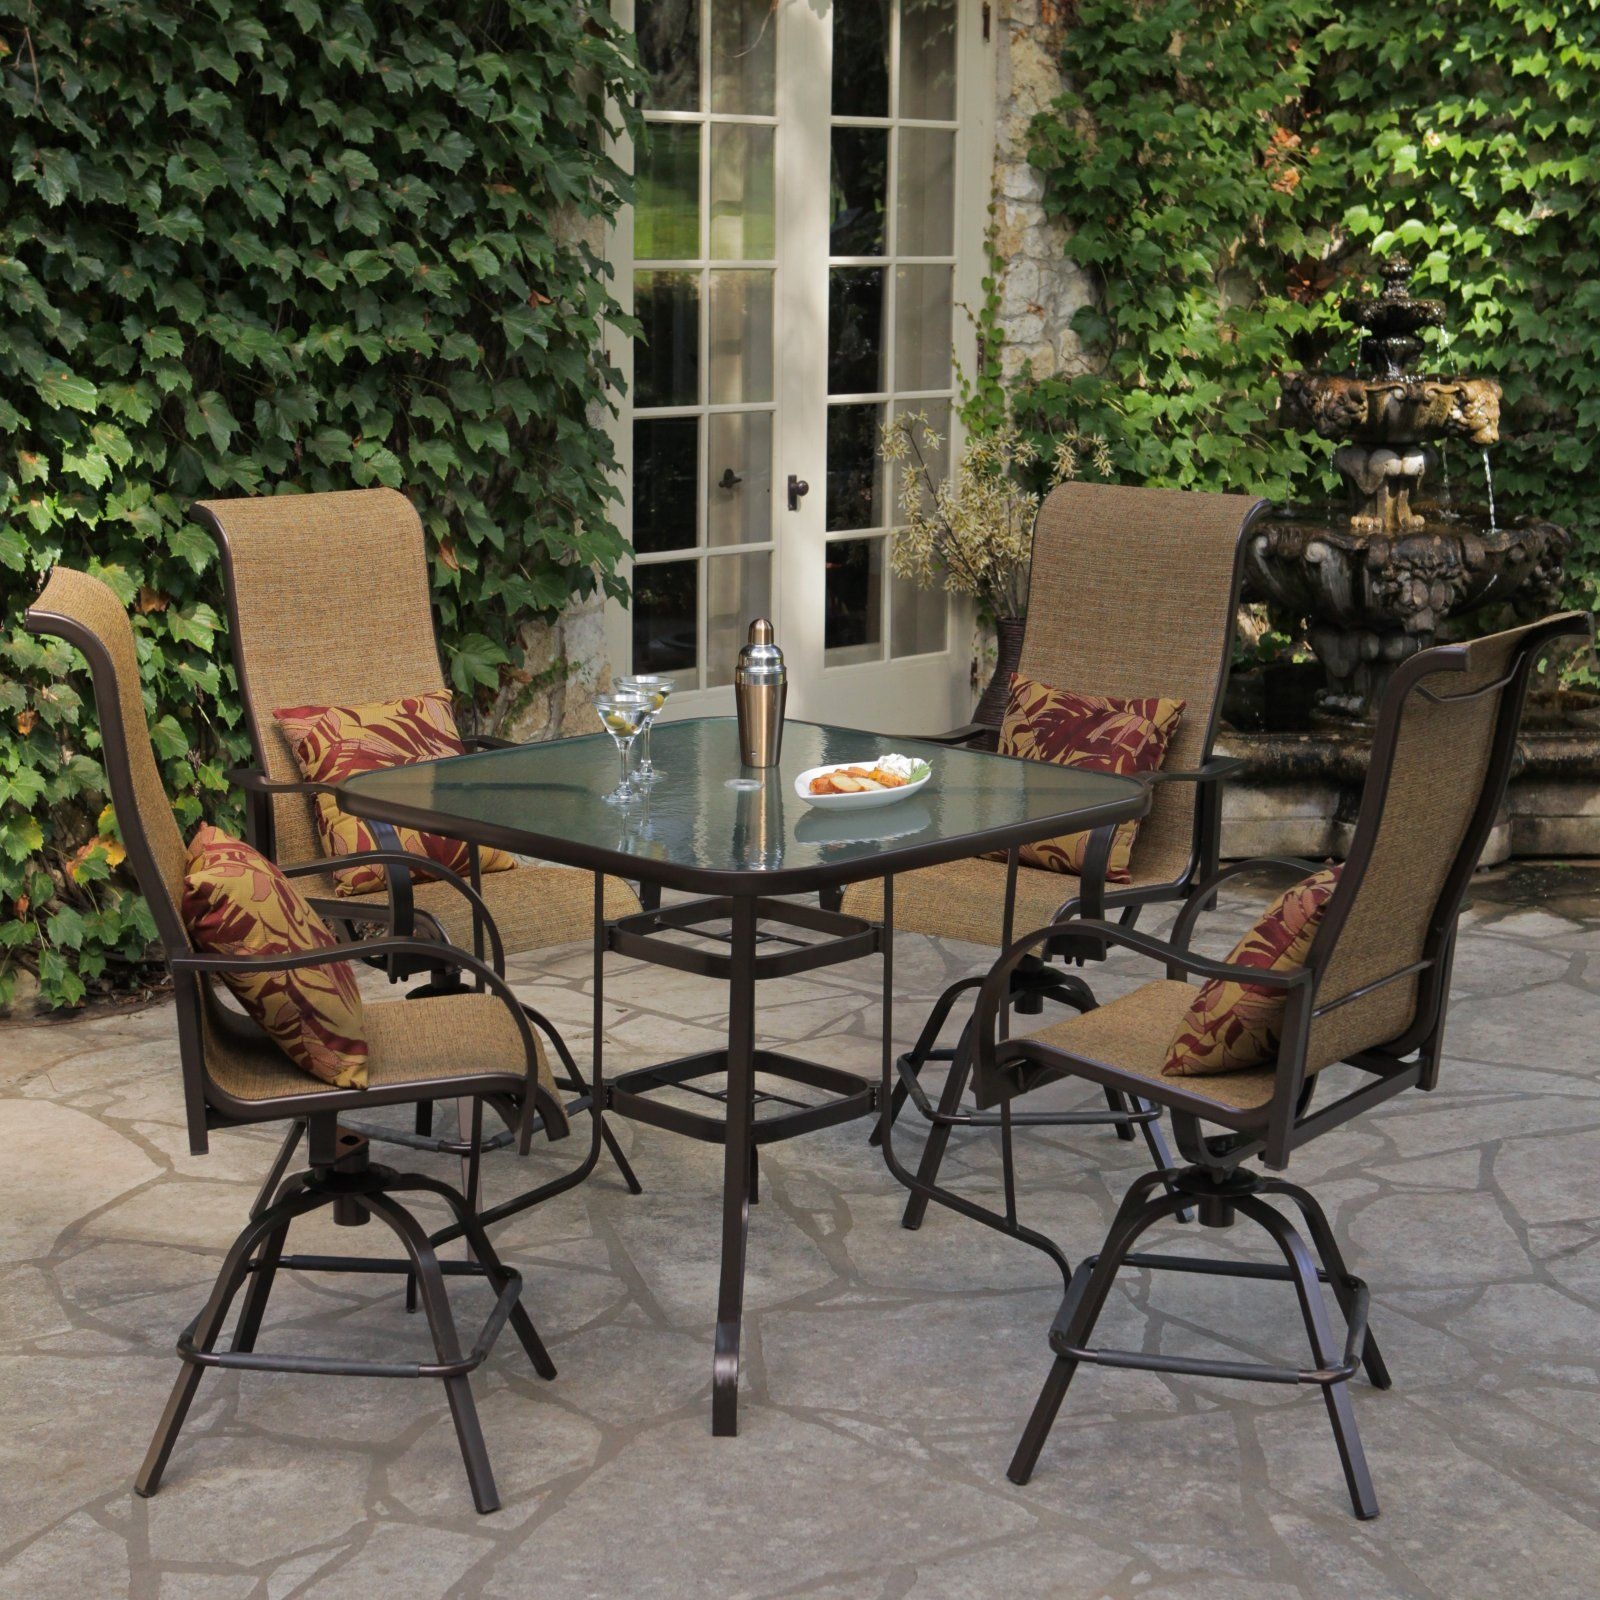 Rioja Balcony Height Outdoor Dining Set Seats 4